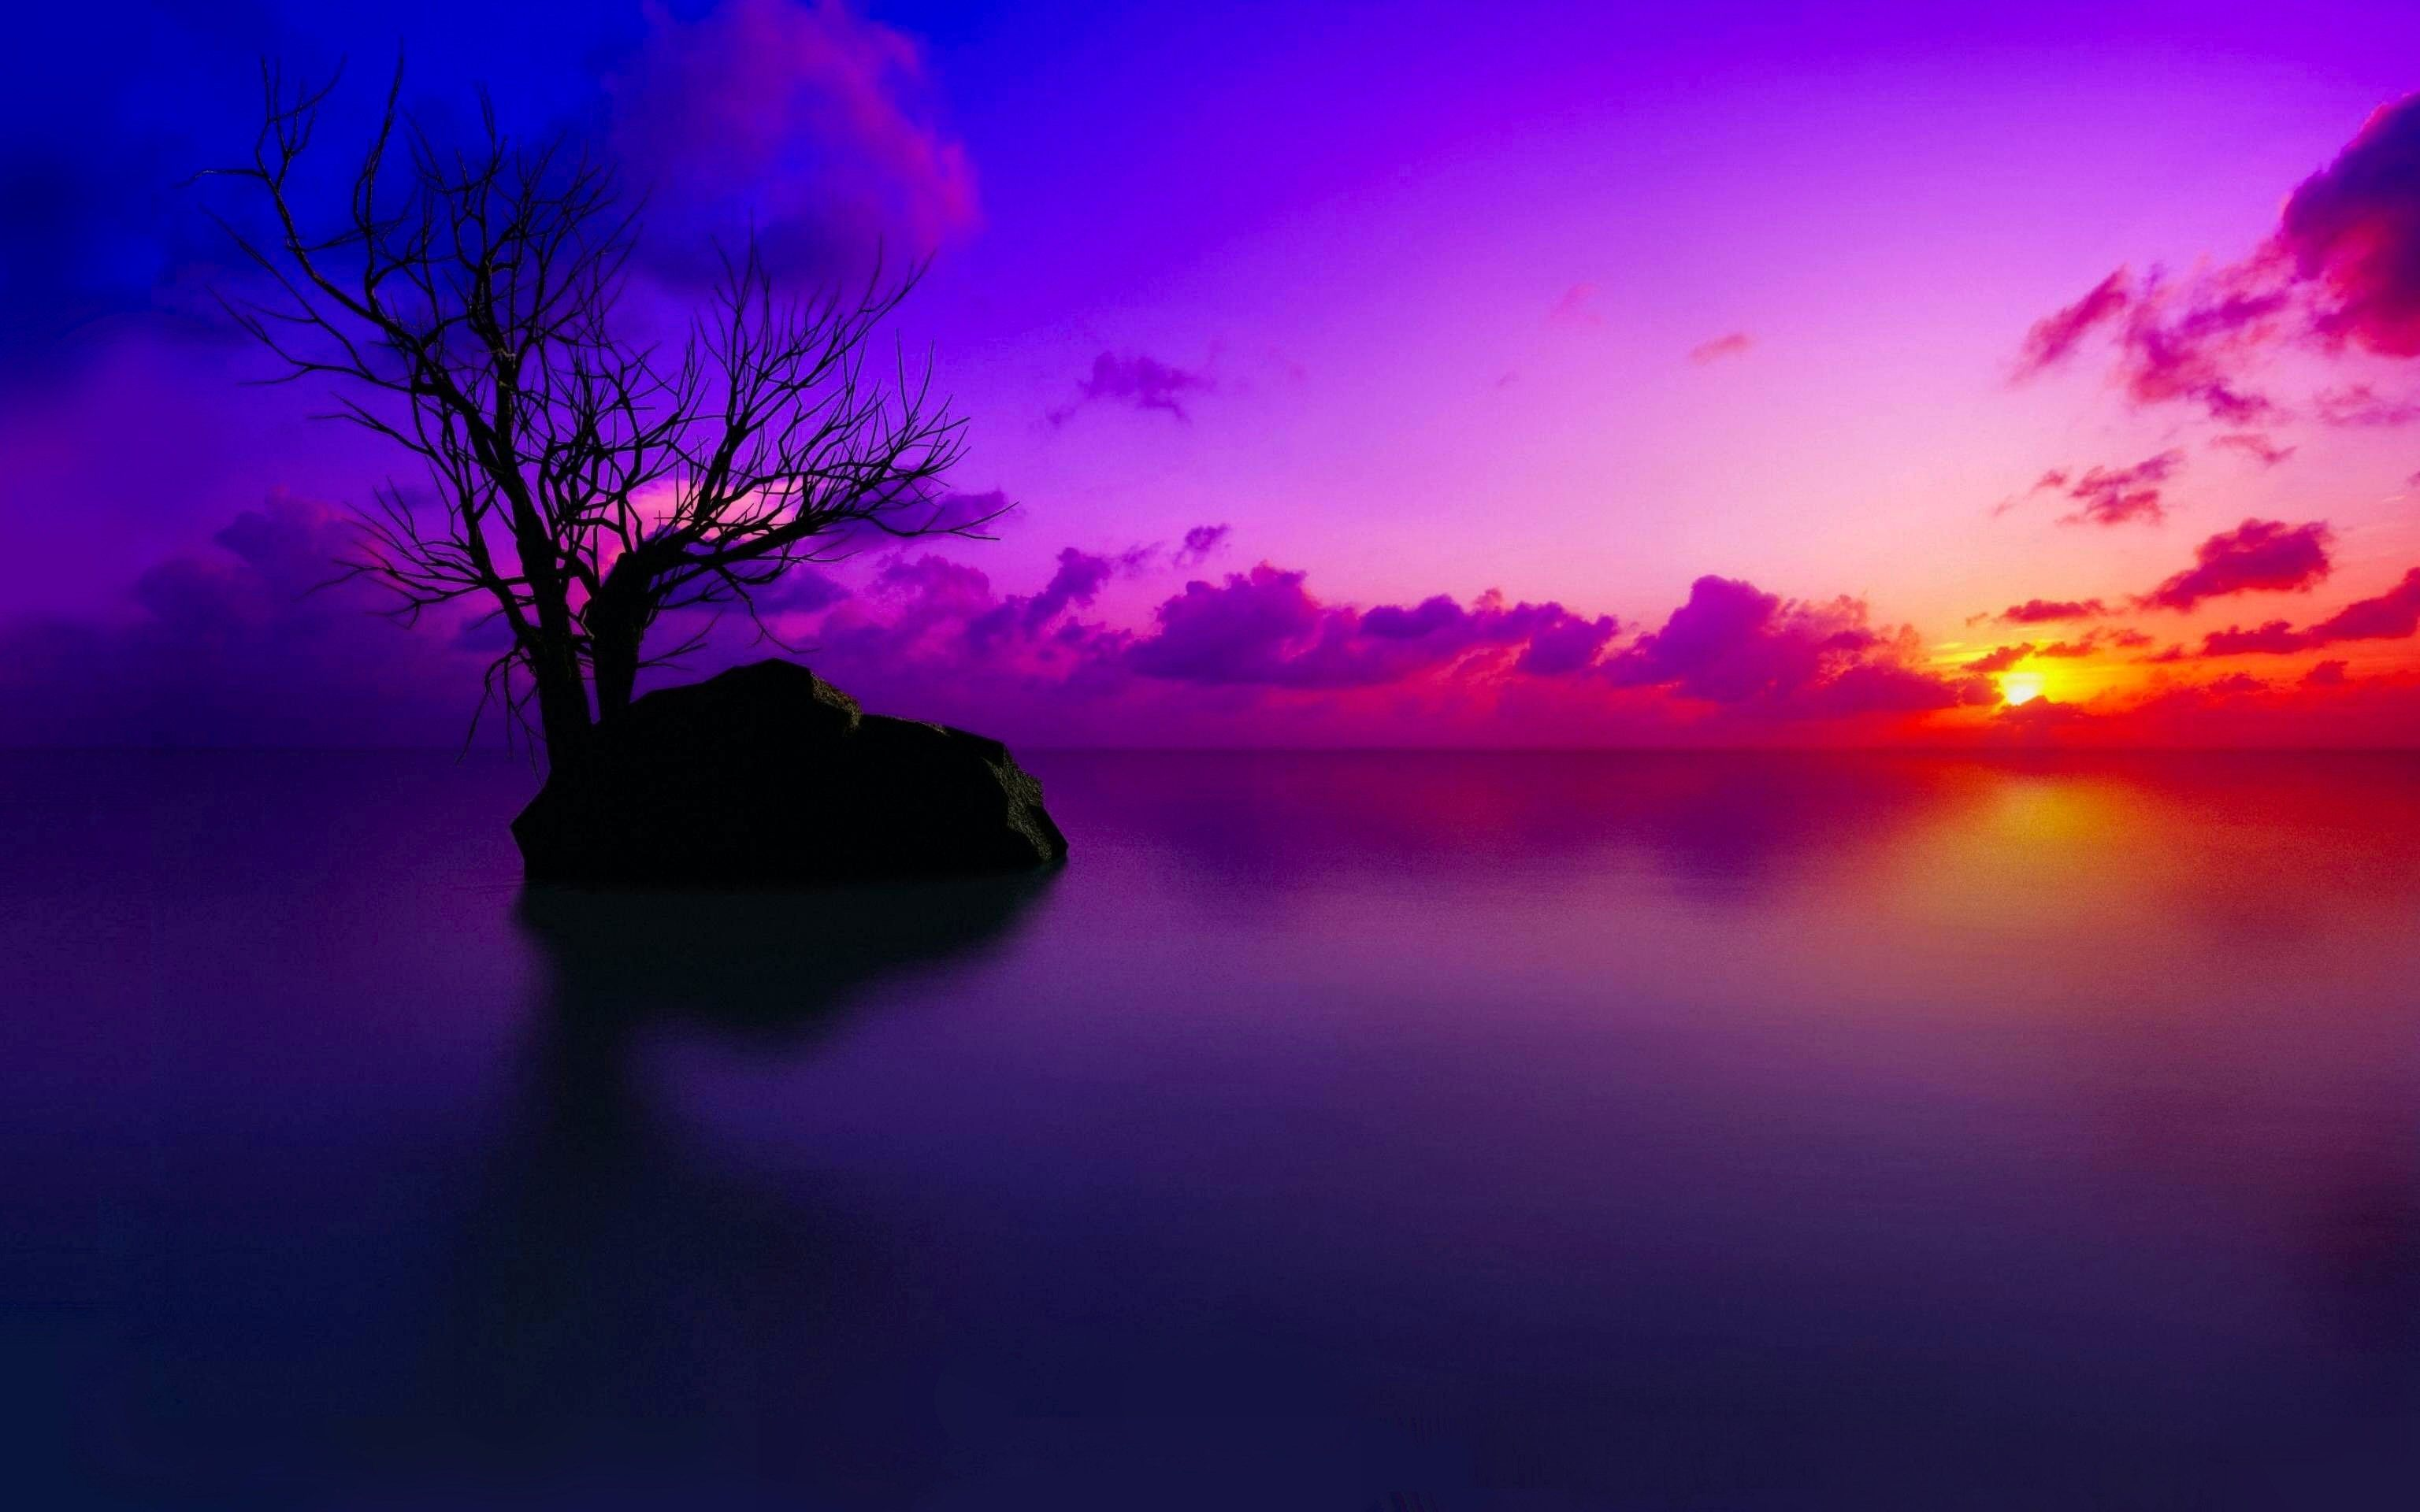 Serenity Wallpapers Top Free Serenity Backgrounds Wallpaperaccess